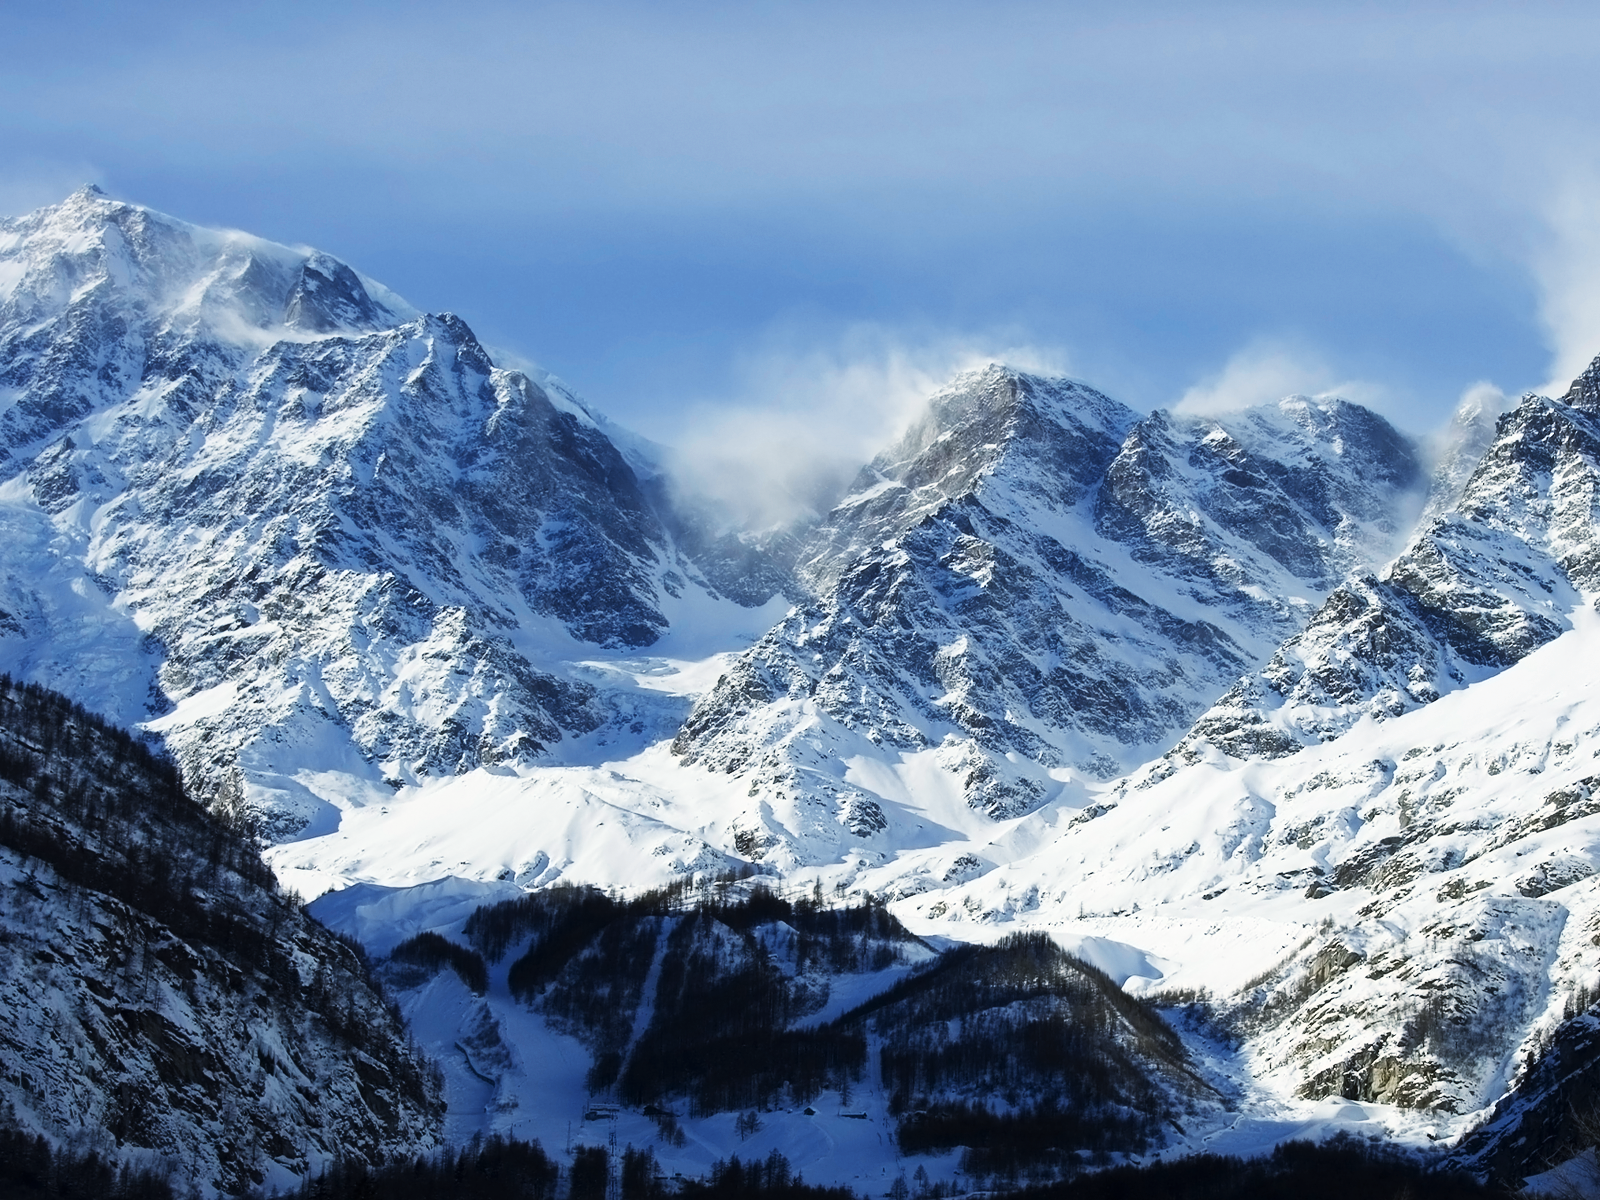 Download Wallpaper Mountain Winter - 39ca72a59cb024a01744a8c4ee9bcc0f  Perfect Image Reference_6911100.png